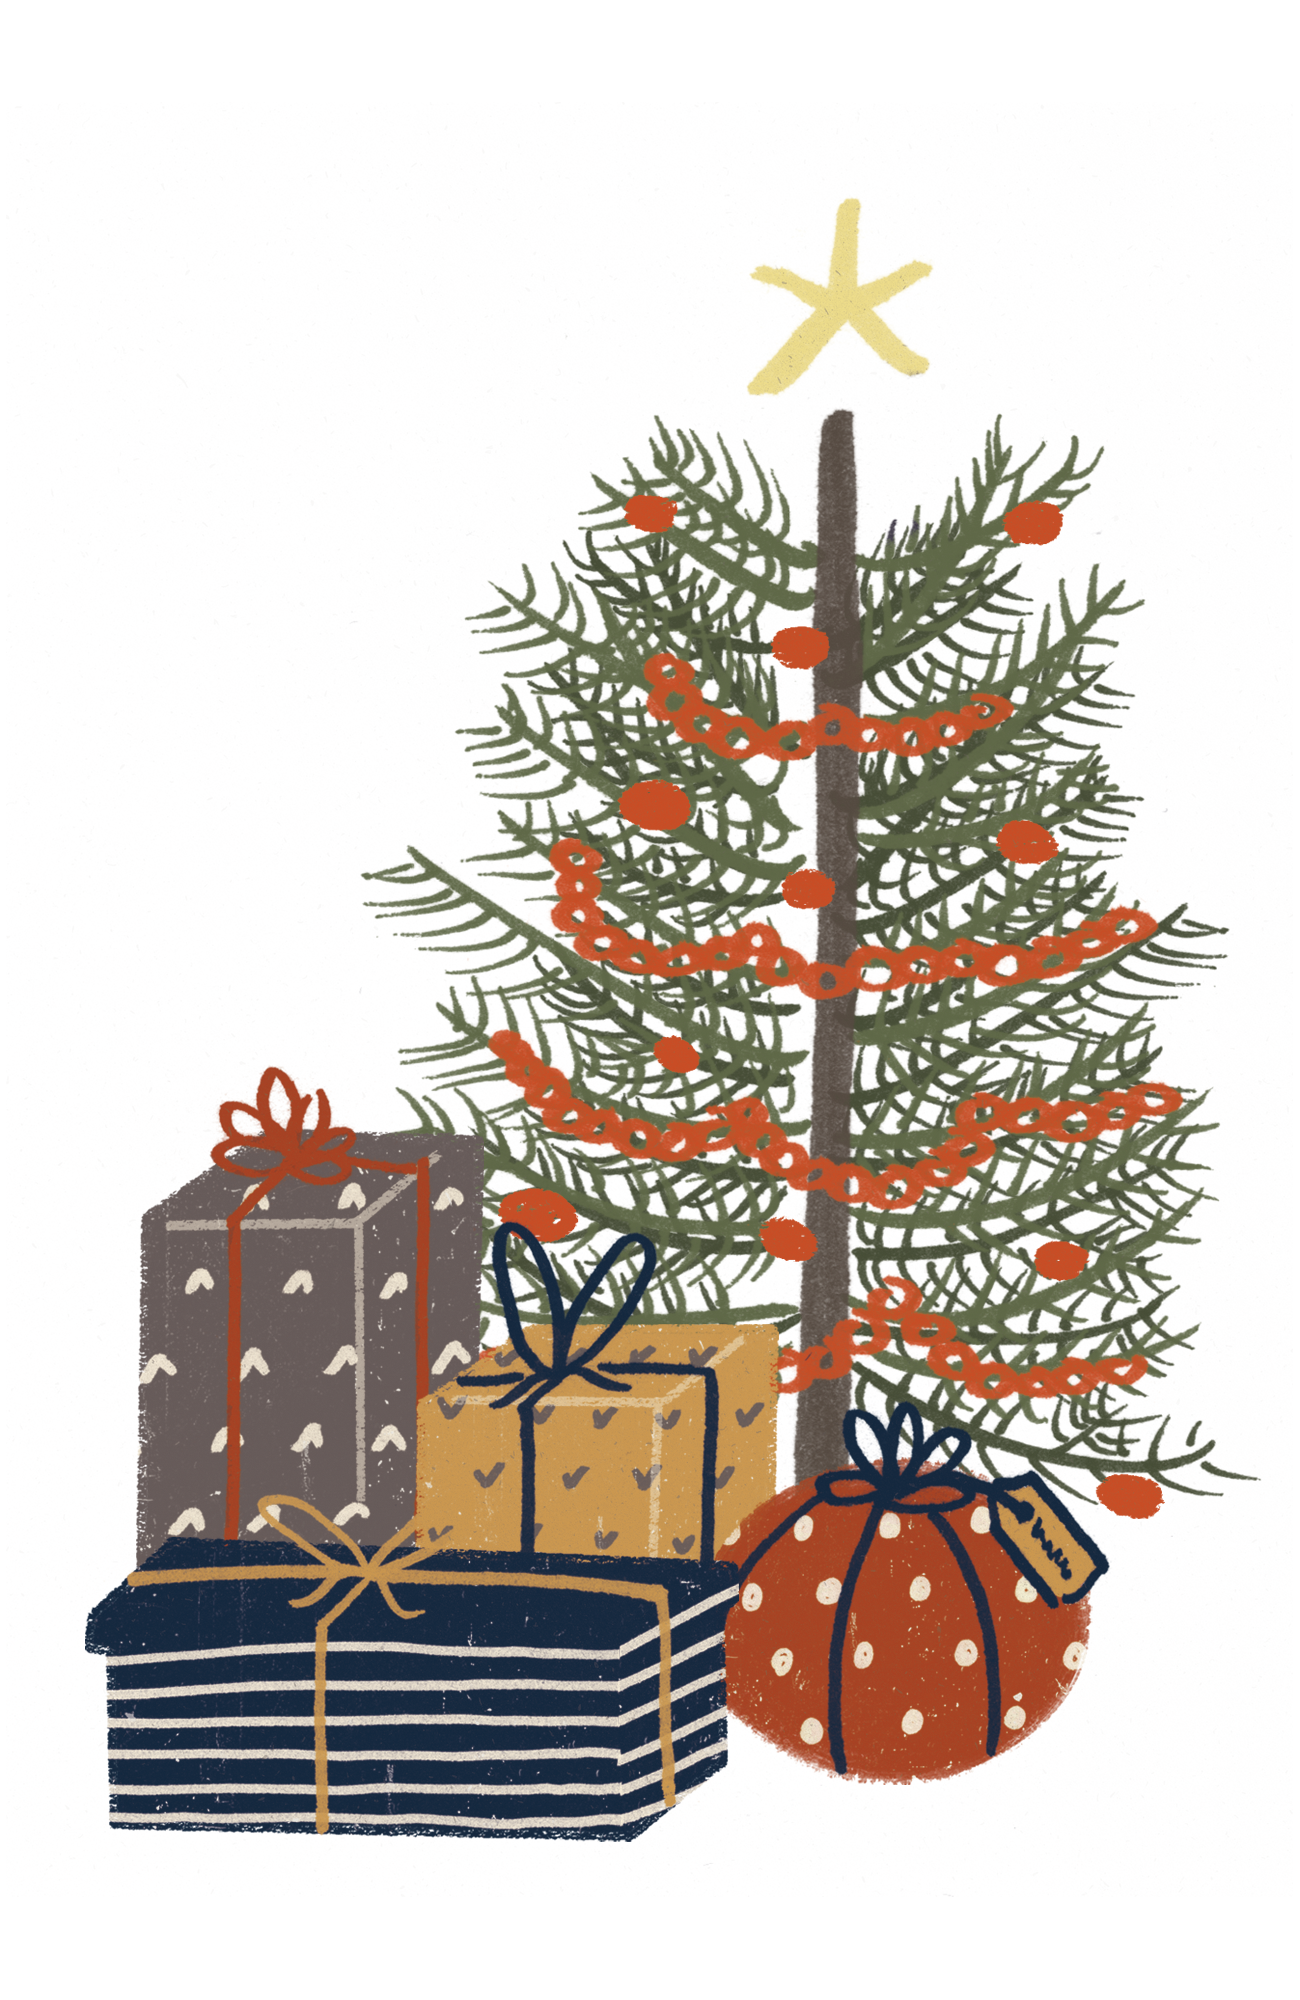 Illustration of a Christmas Tree